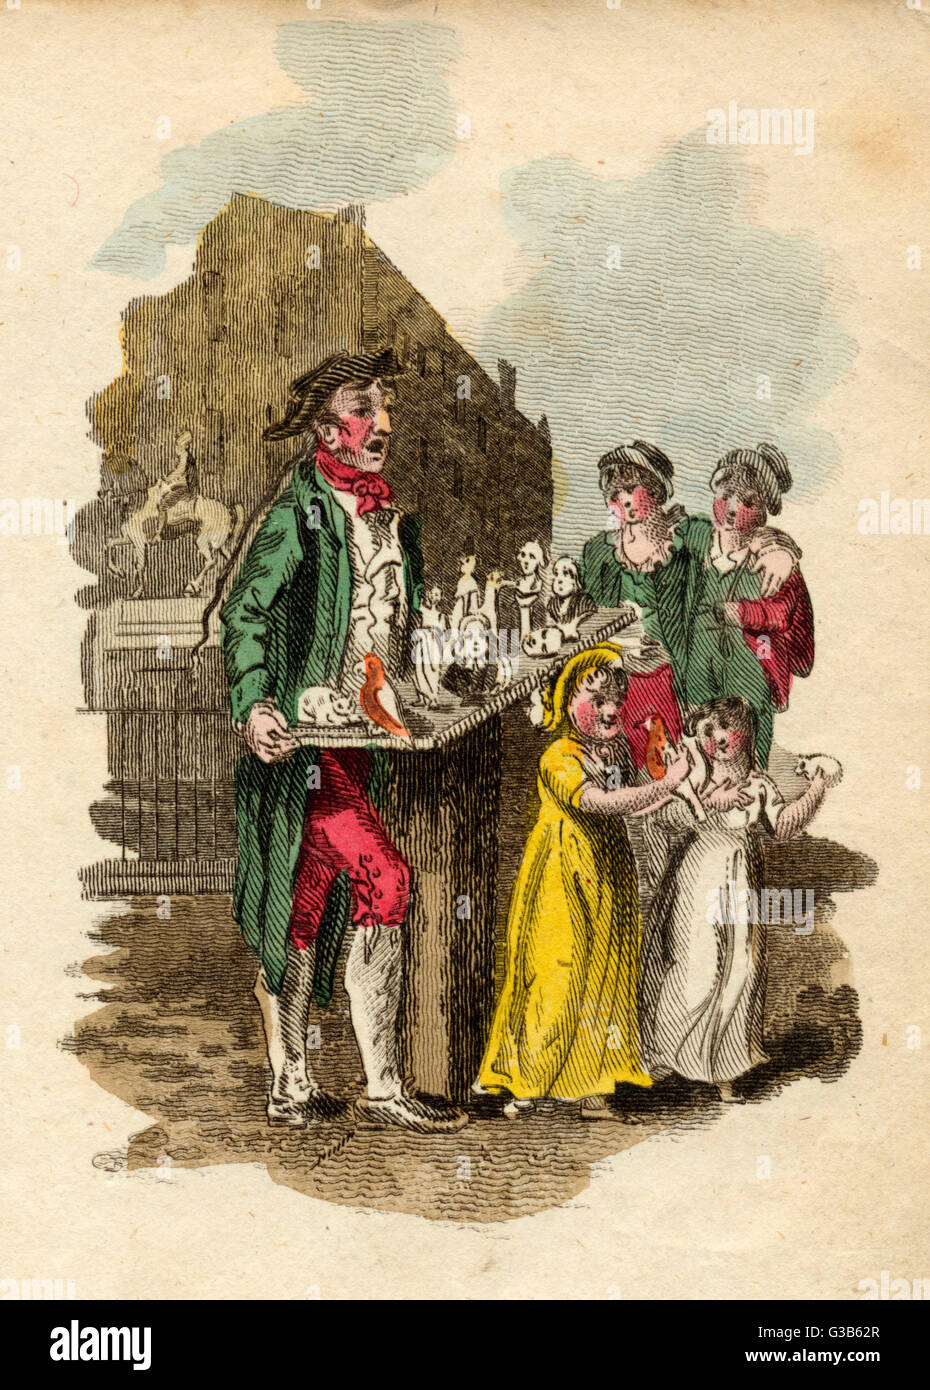 A street trader of 'fine  images'         Date: 1804 - Stock Image